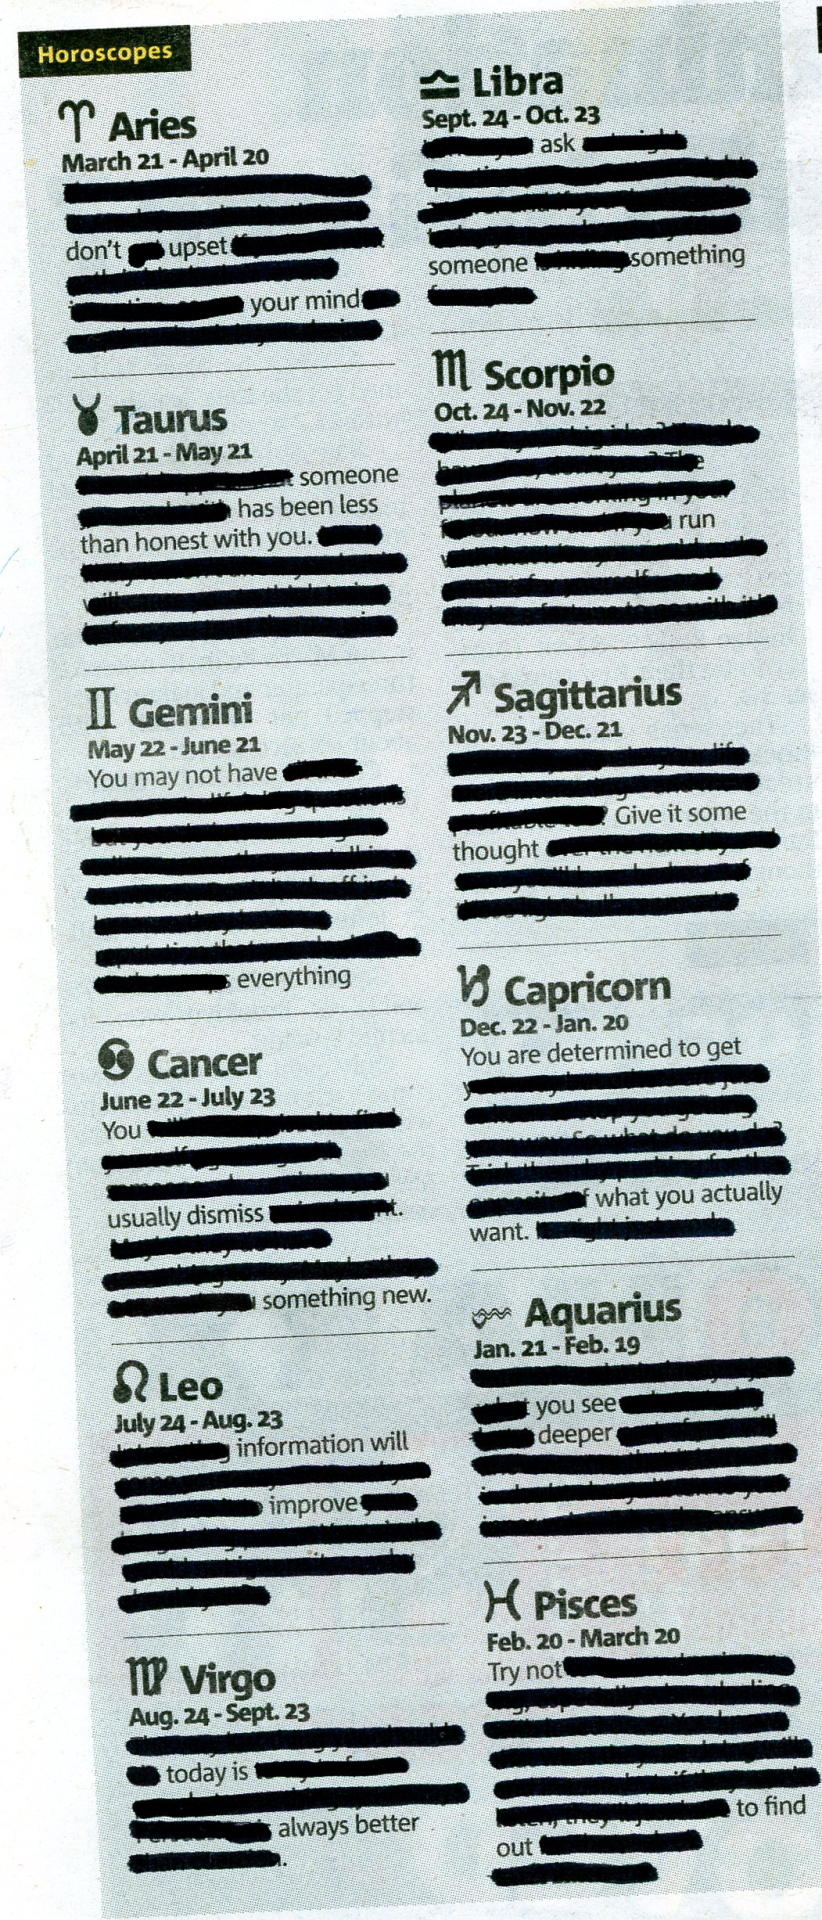 HOROSCOPE - MAY 11, 2013